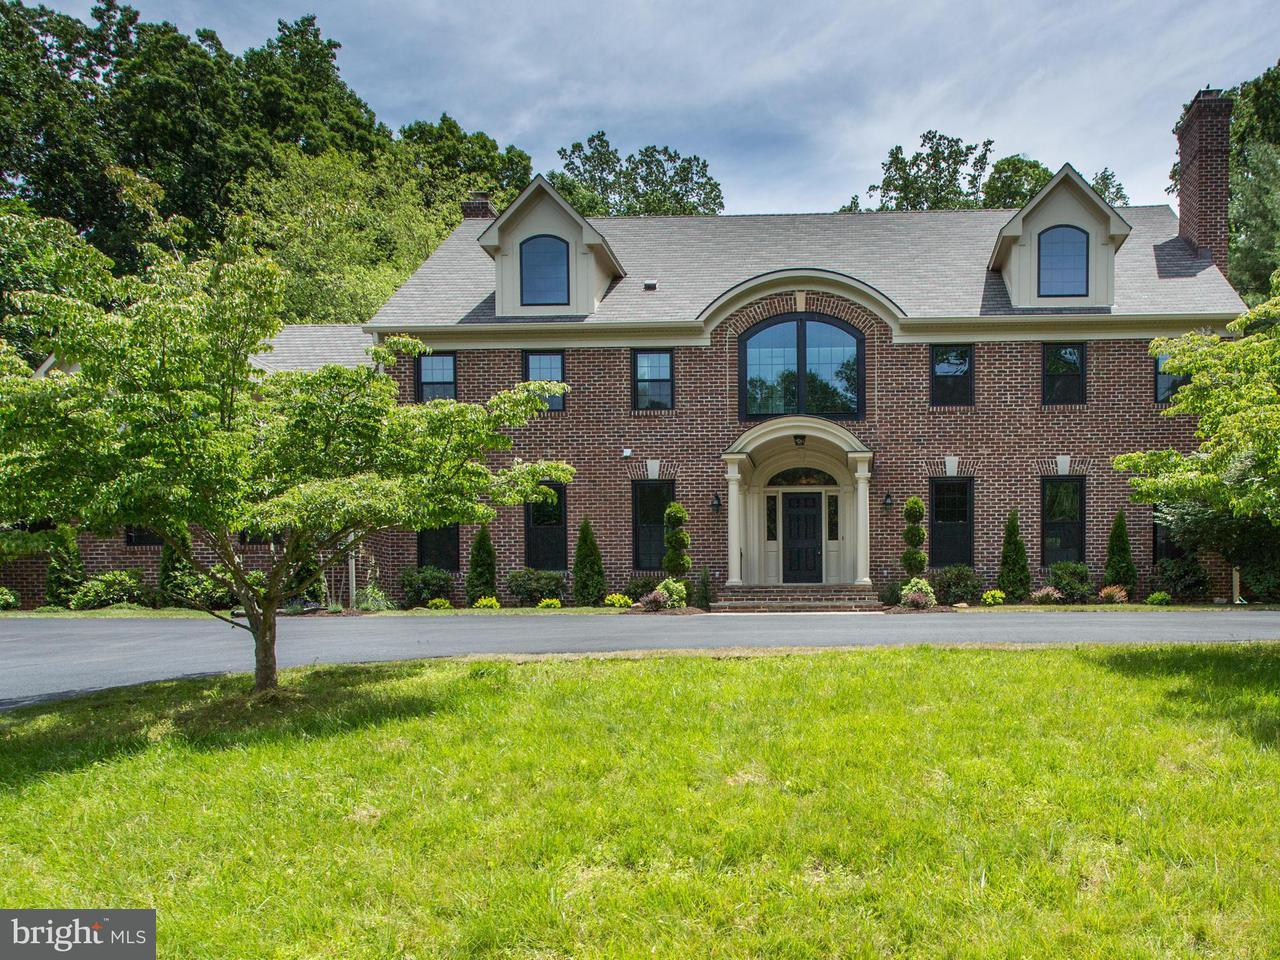 Single Family Home for Sale at 10905 Pleasant Hill Dr #10905 10905 Pleasant Hill Dr #10905 Potomac, Maryland 20854 United States